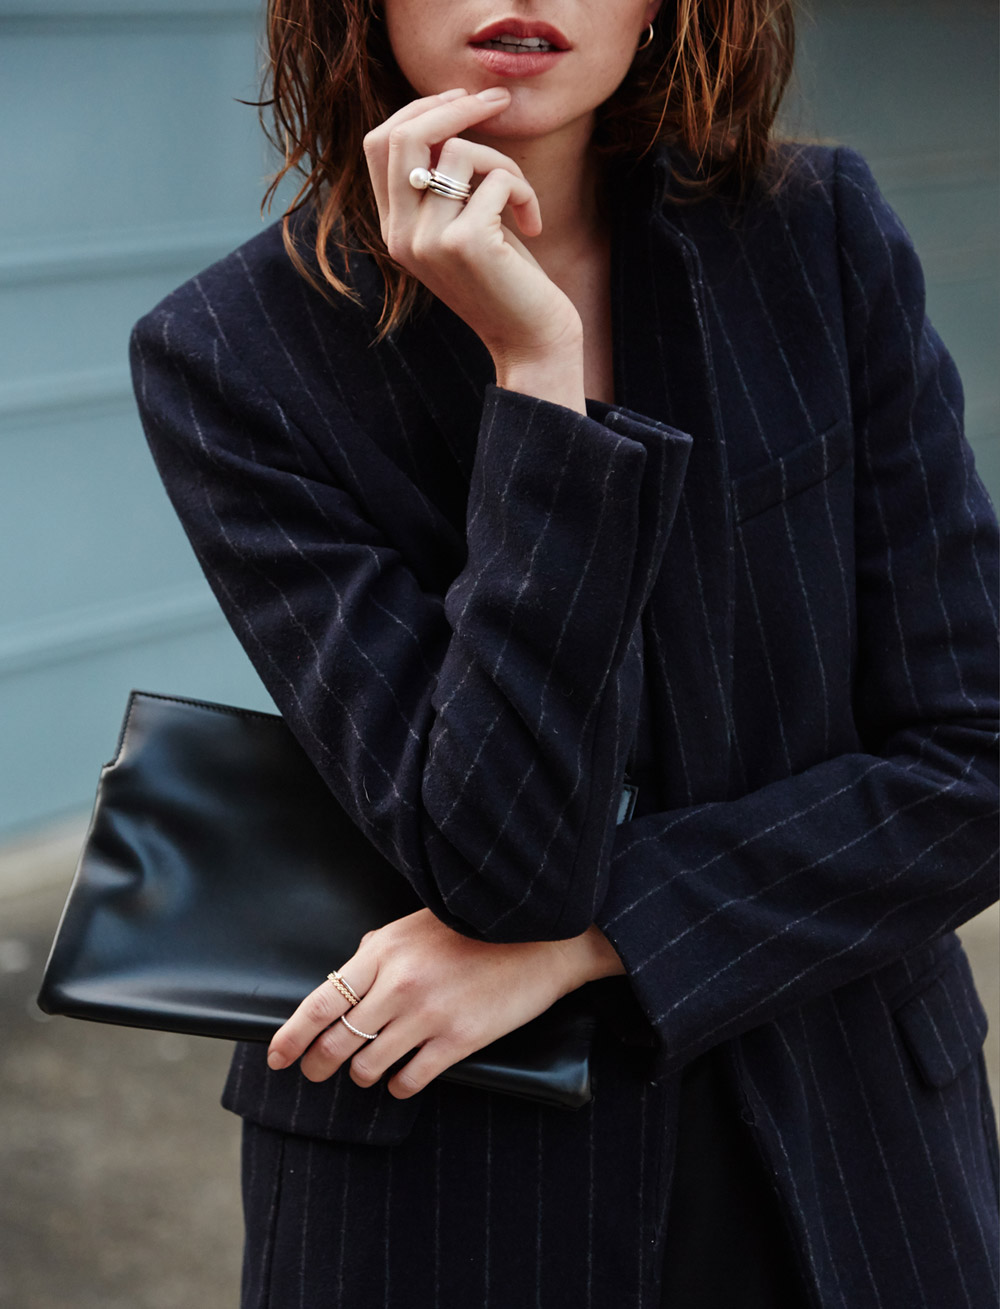 Winter style pinstrip coat chronicles of her 02